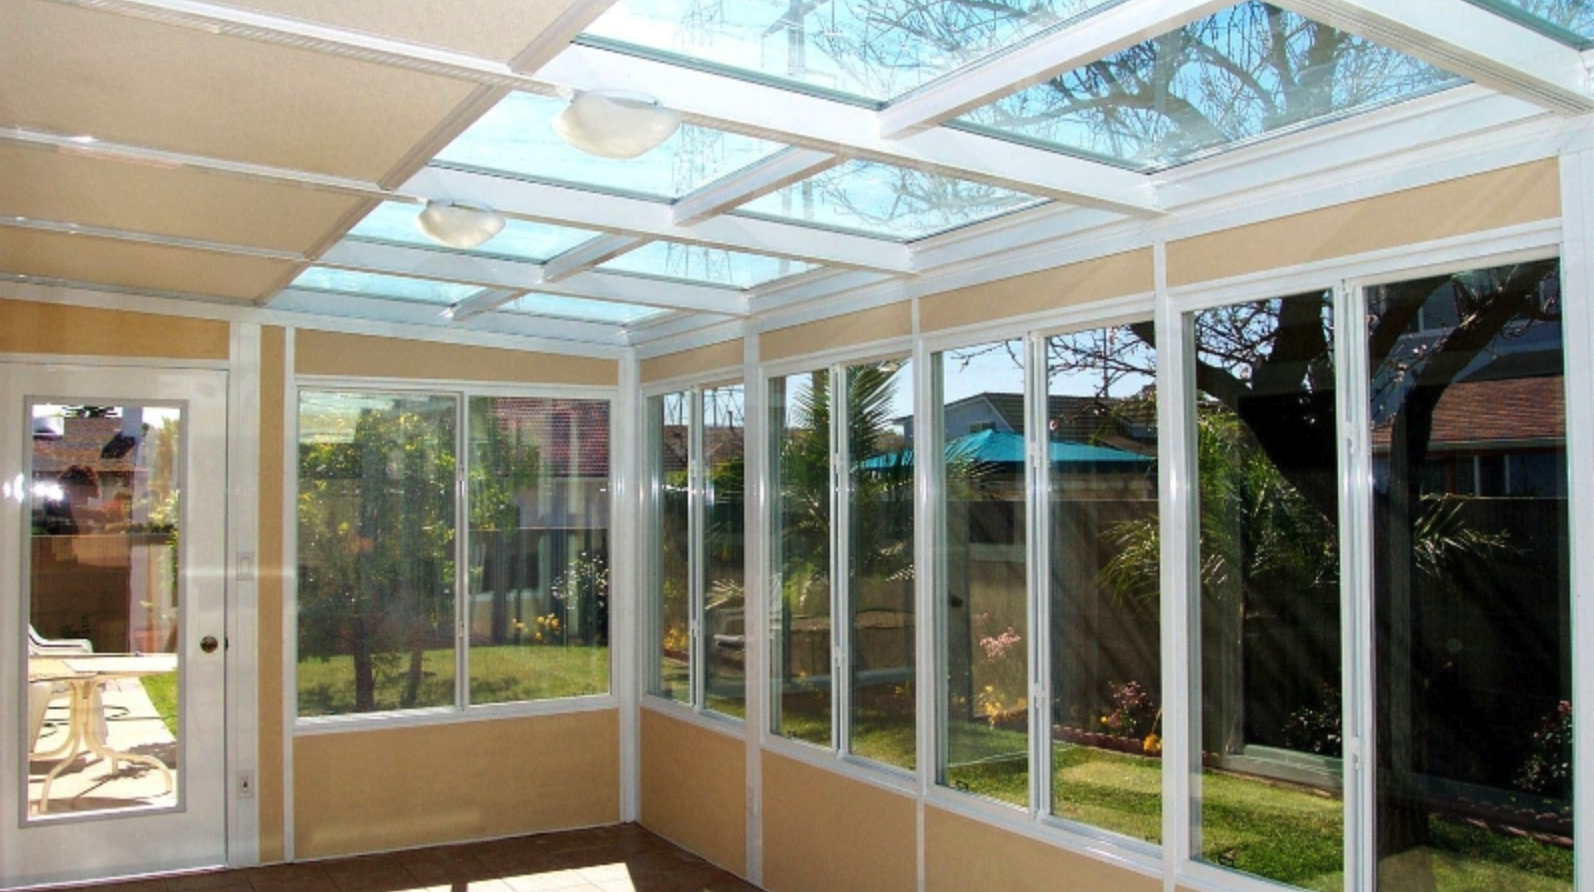 Forquer tells us how to heath and cool our sunrooms and garages safely | North Canton, OH